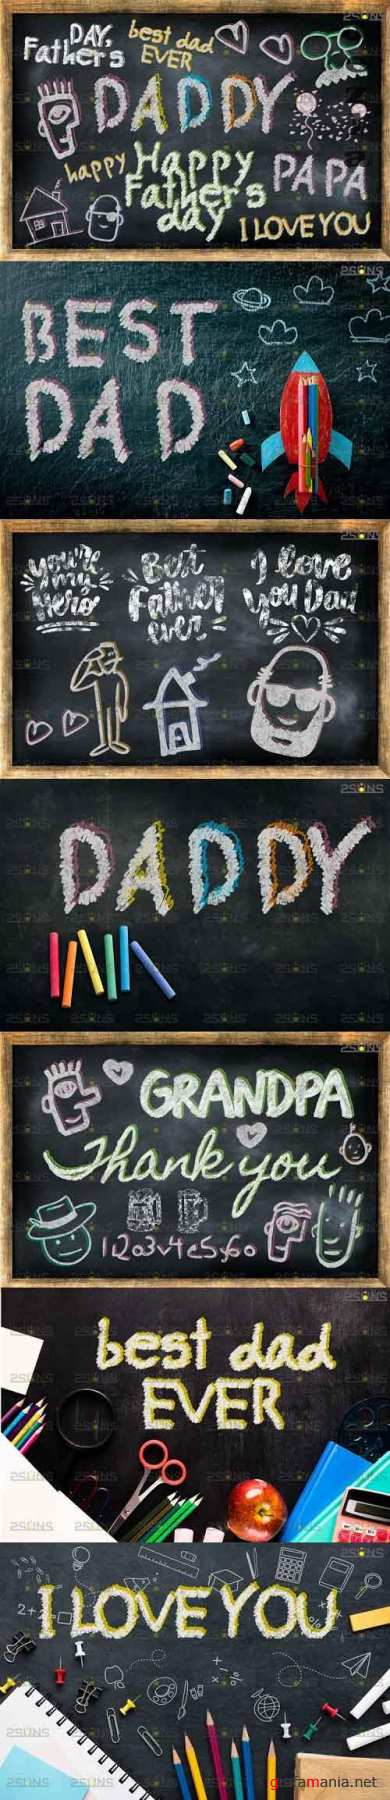 Overlay Father's day Sidewalk Chalk art - 617299